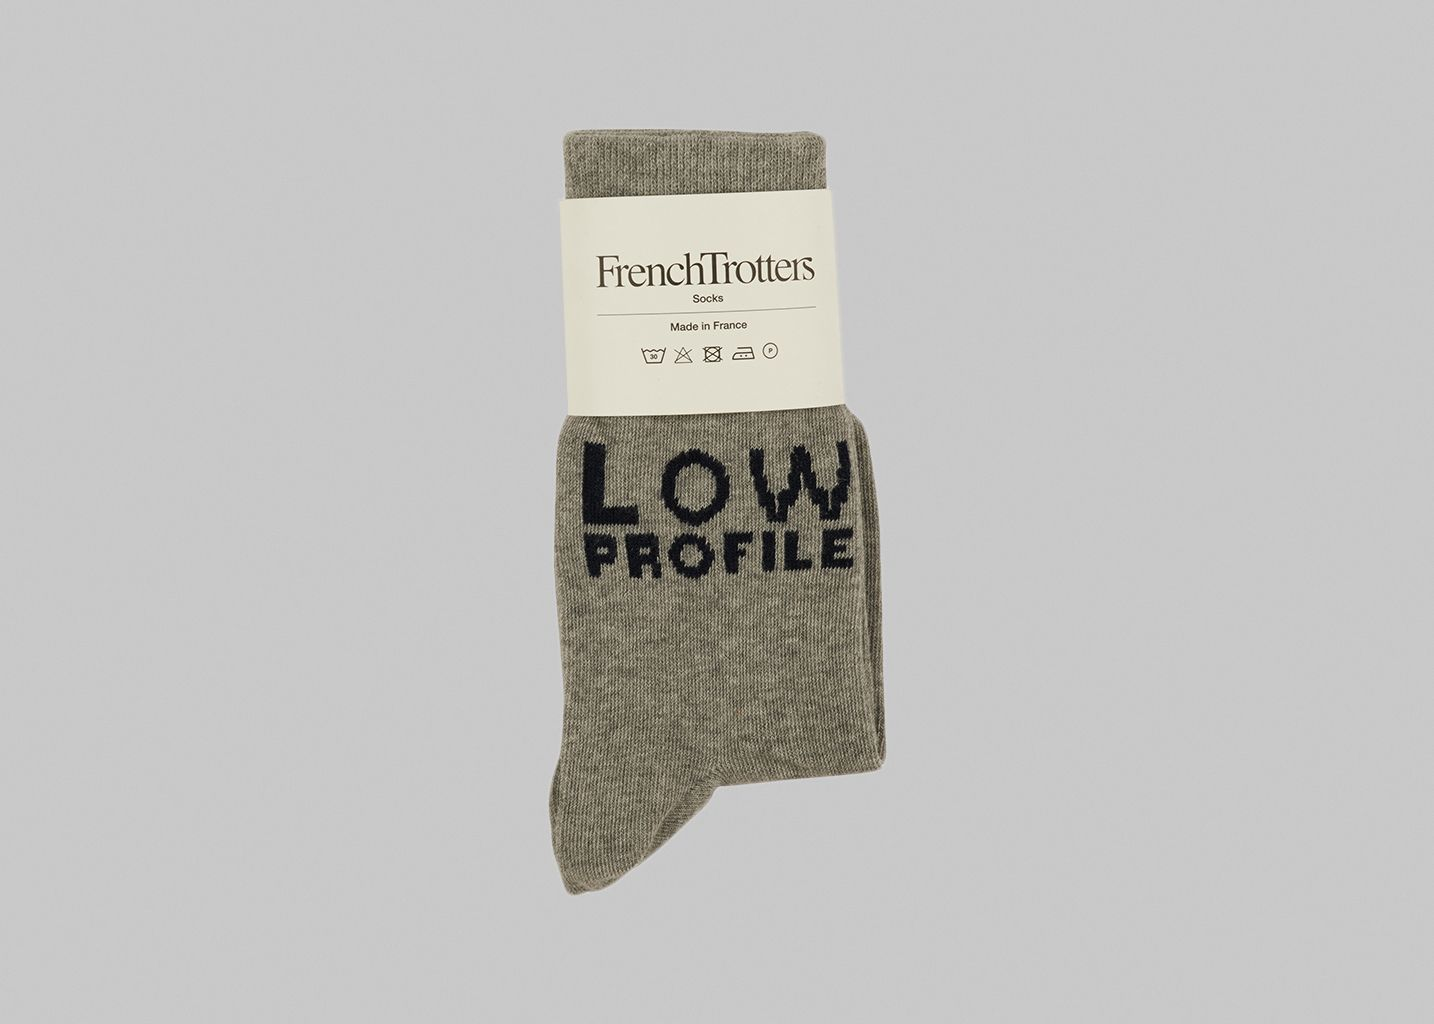 Low Profil - FrenchTrotters Super Normal